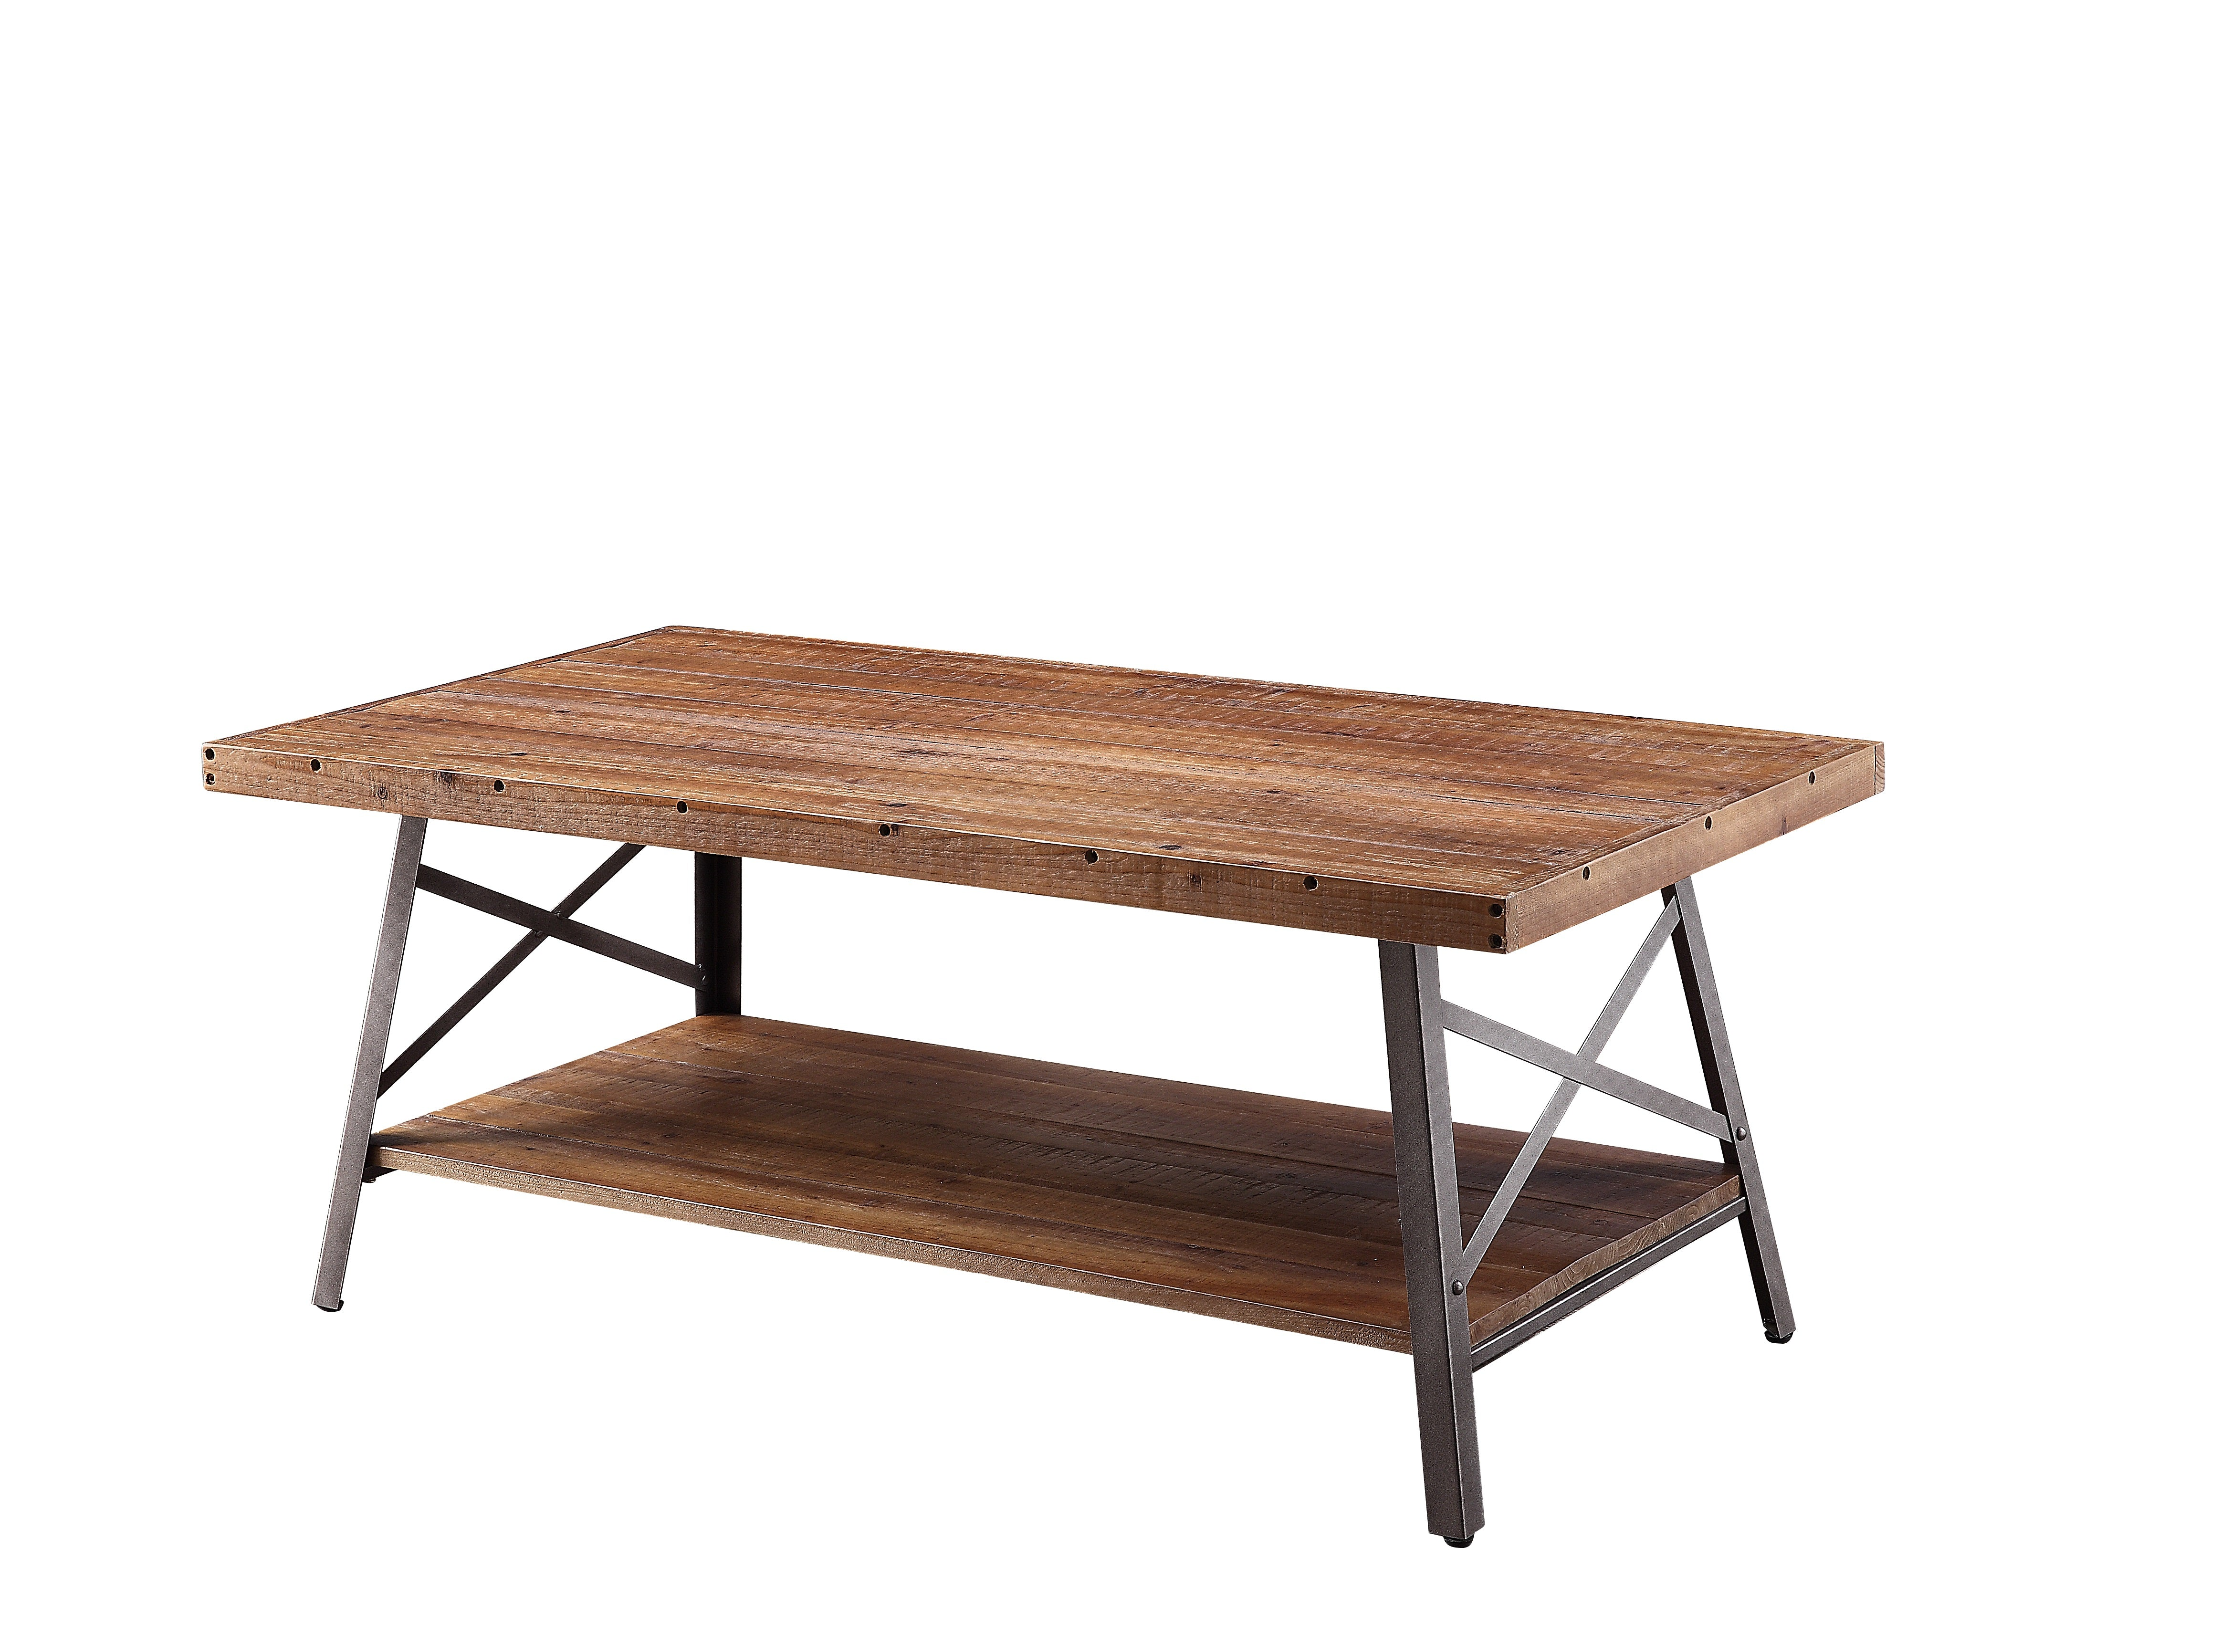 Rustic Farmhouse Coffee Table With Metal X Frame